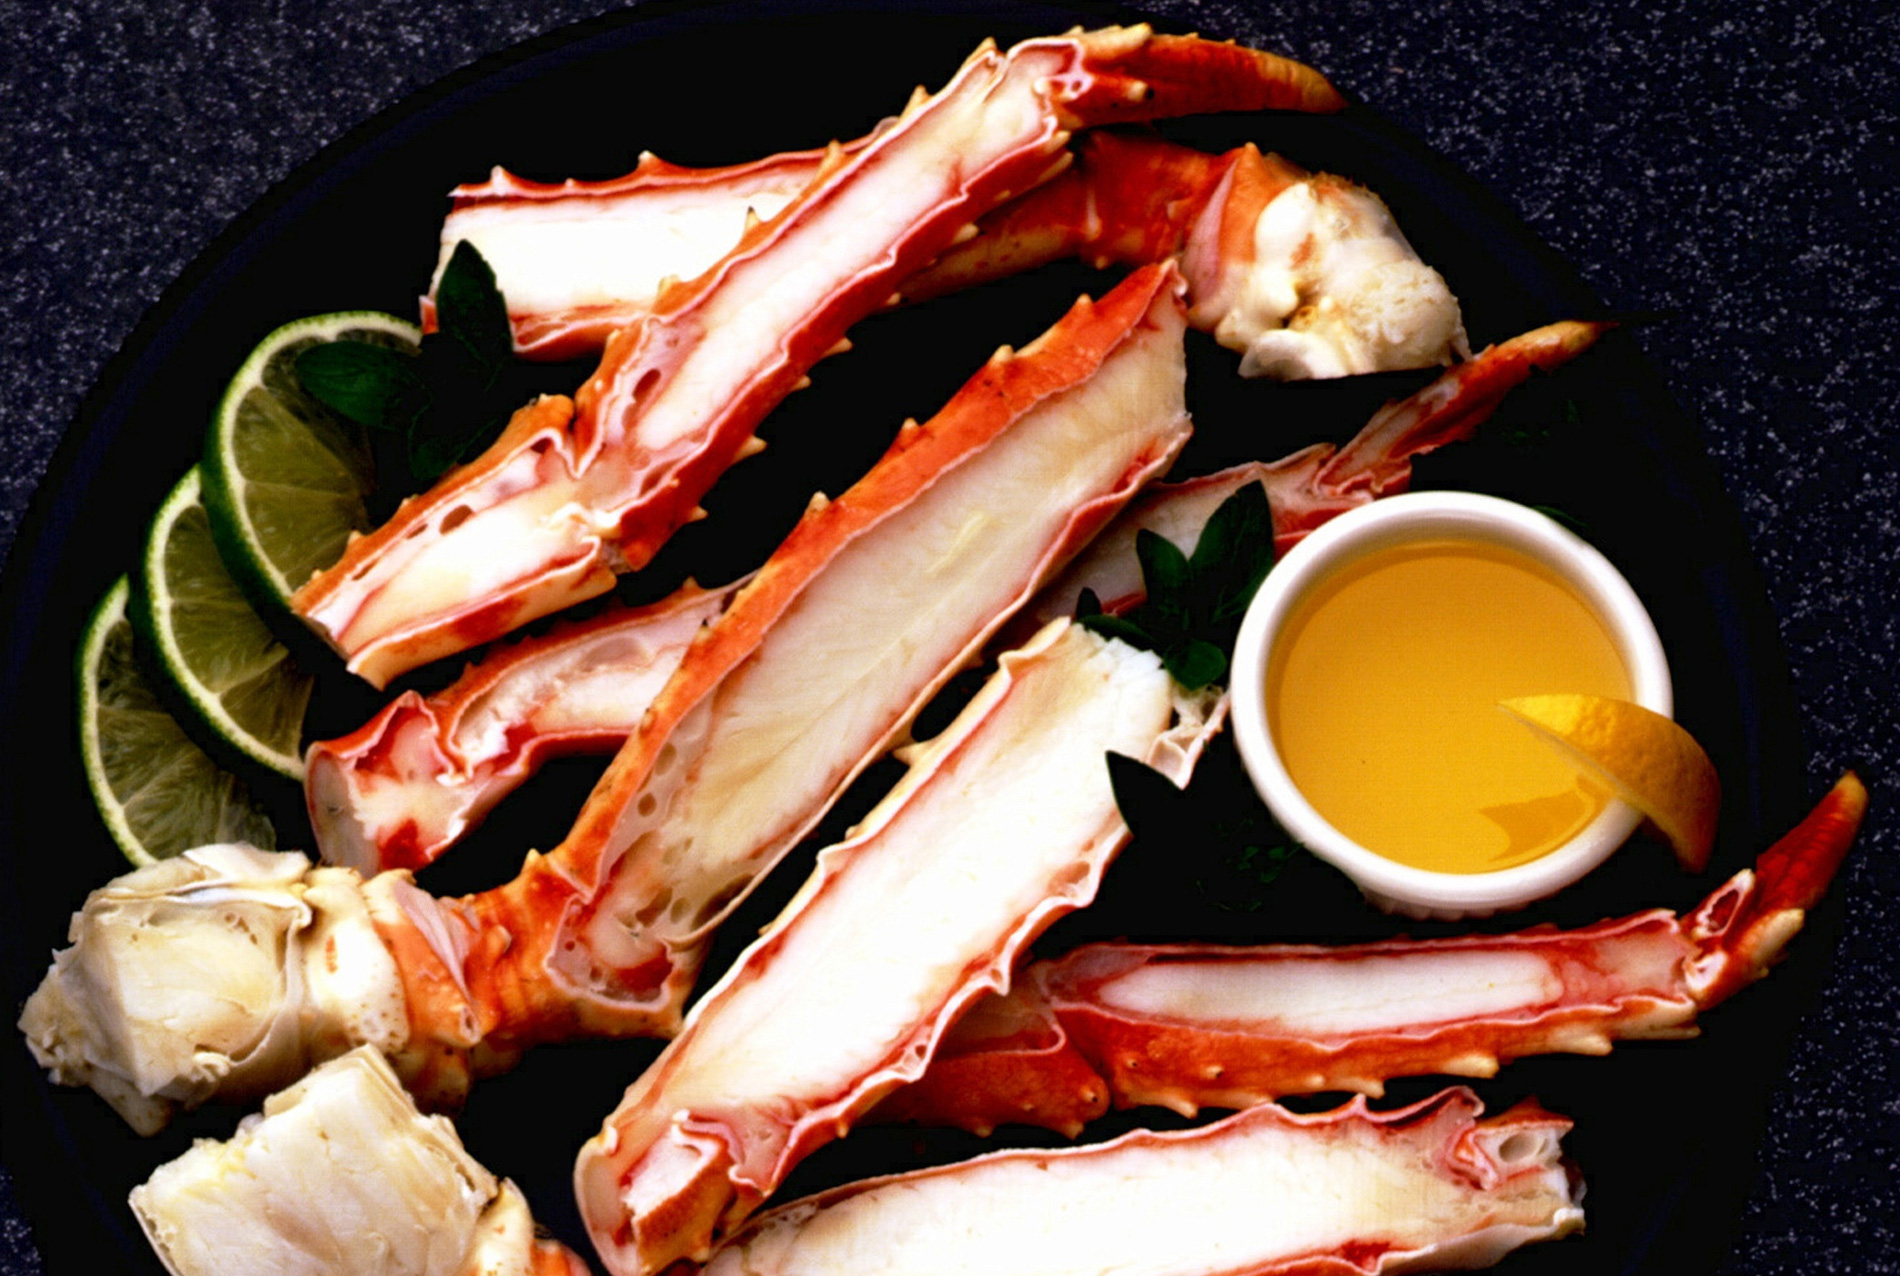 Lemon Basil Crab Legs